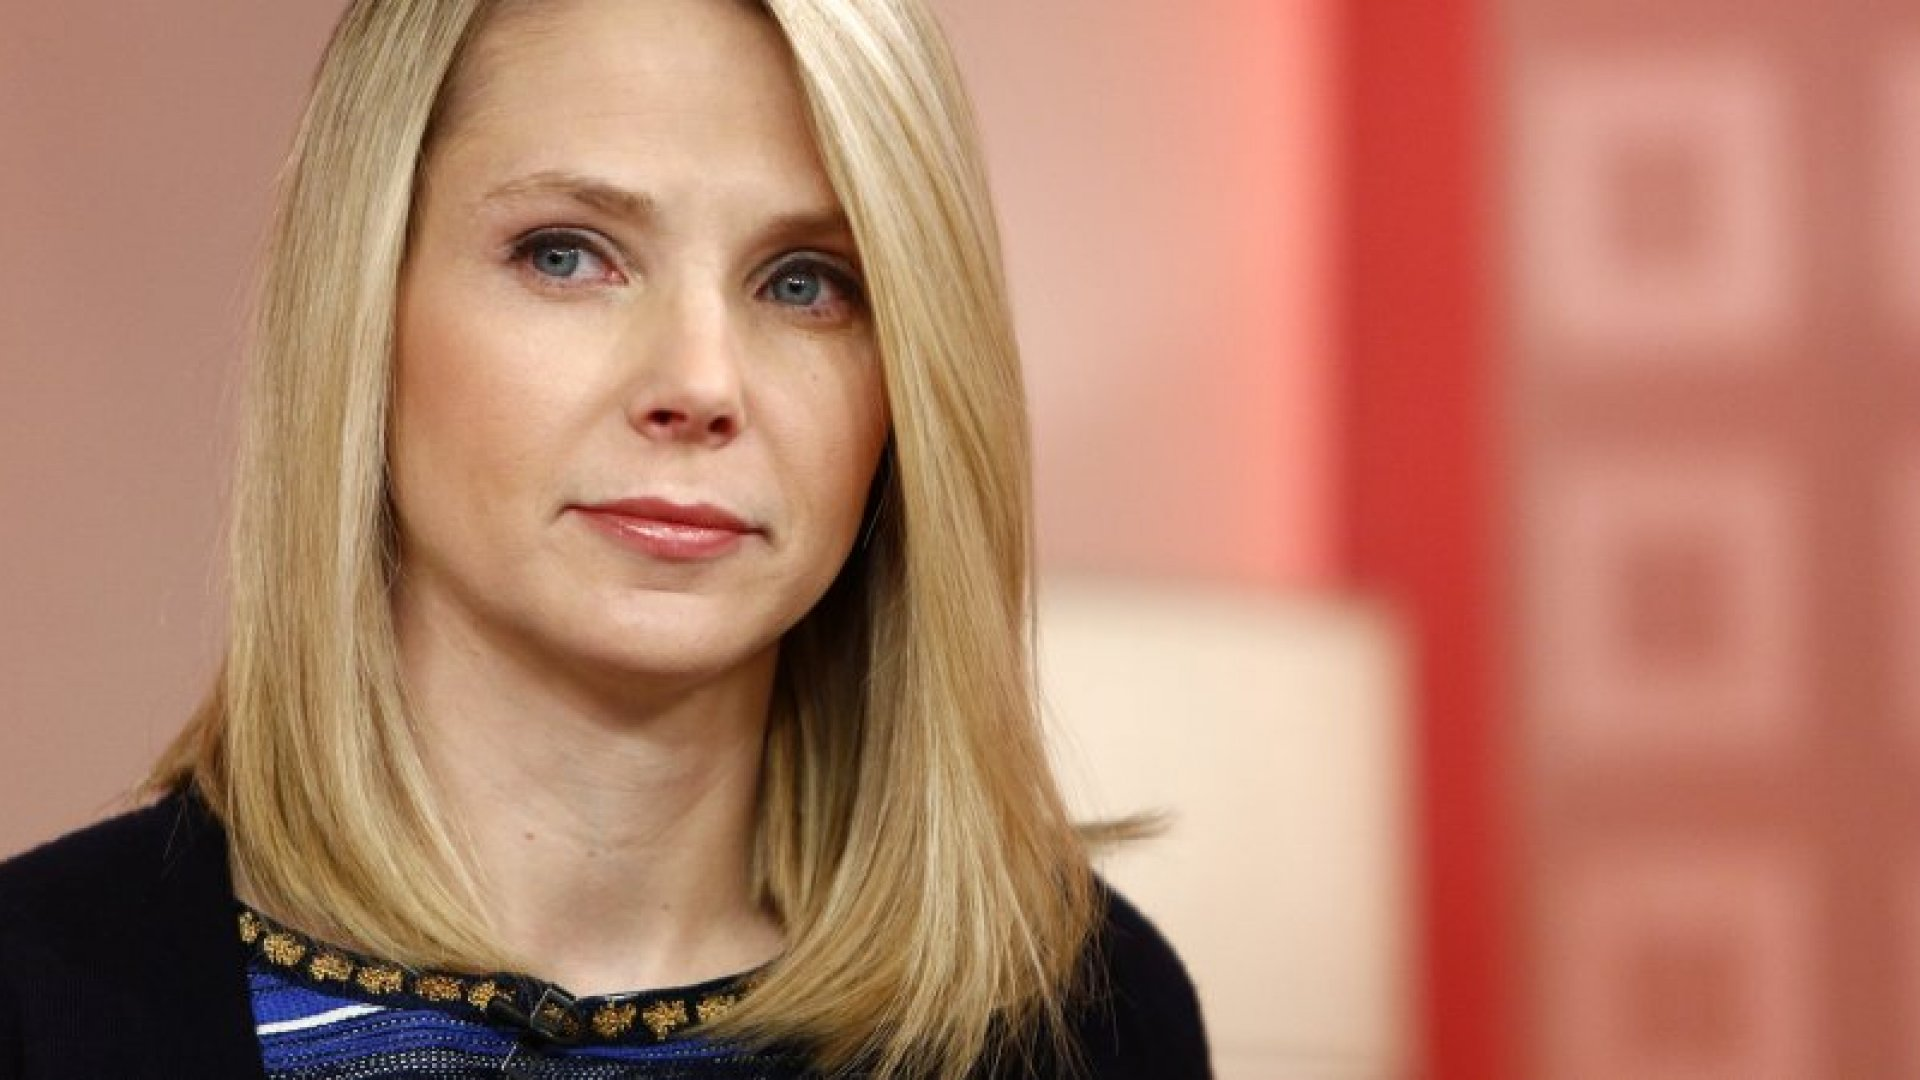 Marissa Mayer Says Yahoo Has One of the World's Fastest Growing Startups